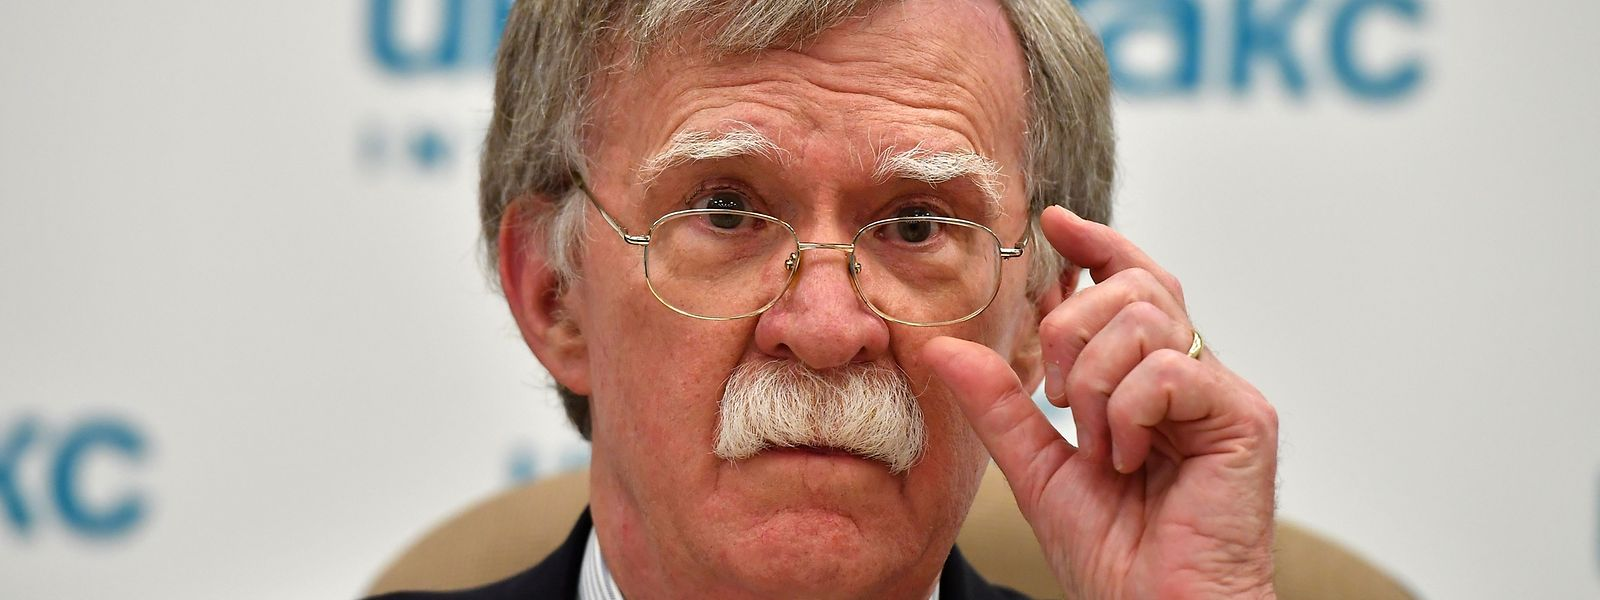 US National Security Advisor John Bolton attends a press conference in Moscow on June 27, 2018. Russian President Vladimir Putin on Wednesday expressed hope that the visit to Moscow of US leader Donald Trump's national security advisor would help revive bilateral ties amid tensions between Moscow and the West. / AFP PHOTO / Yuri KADOBNOV